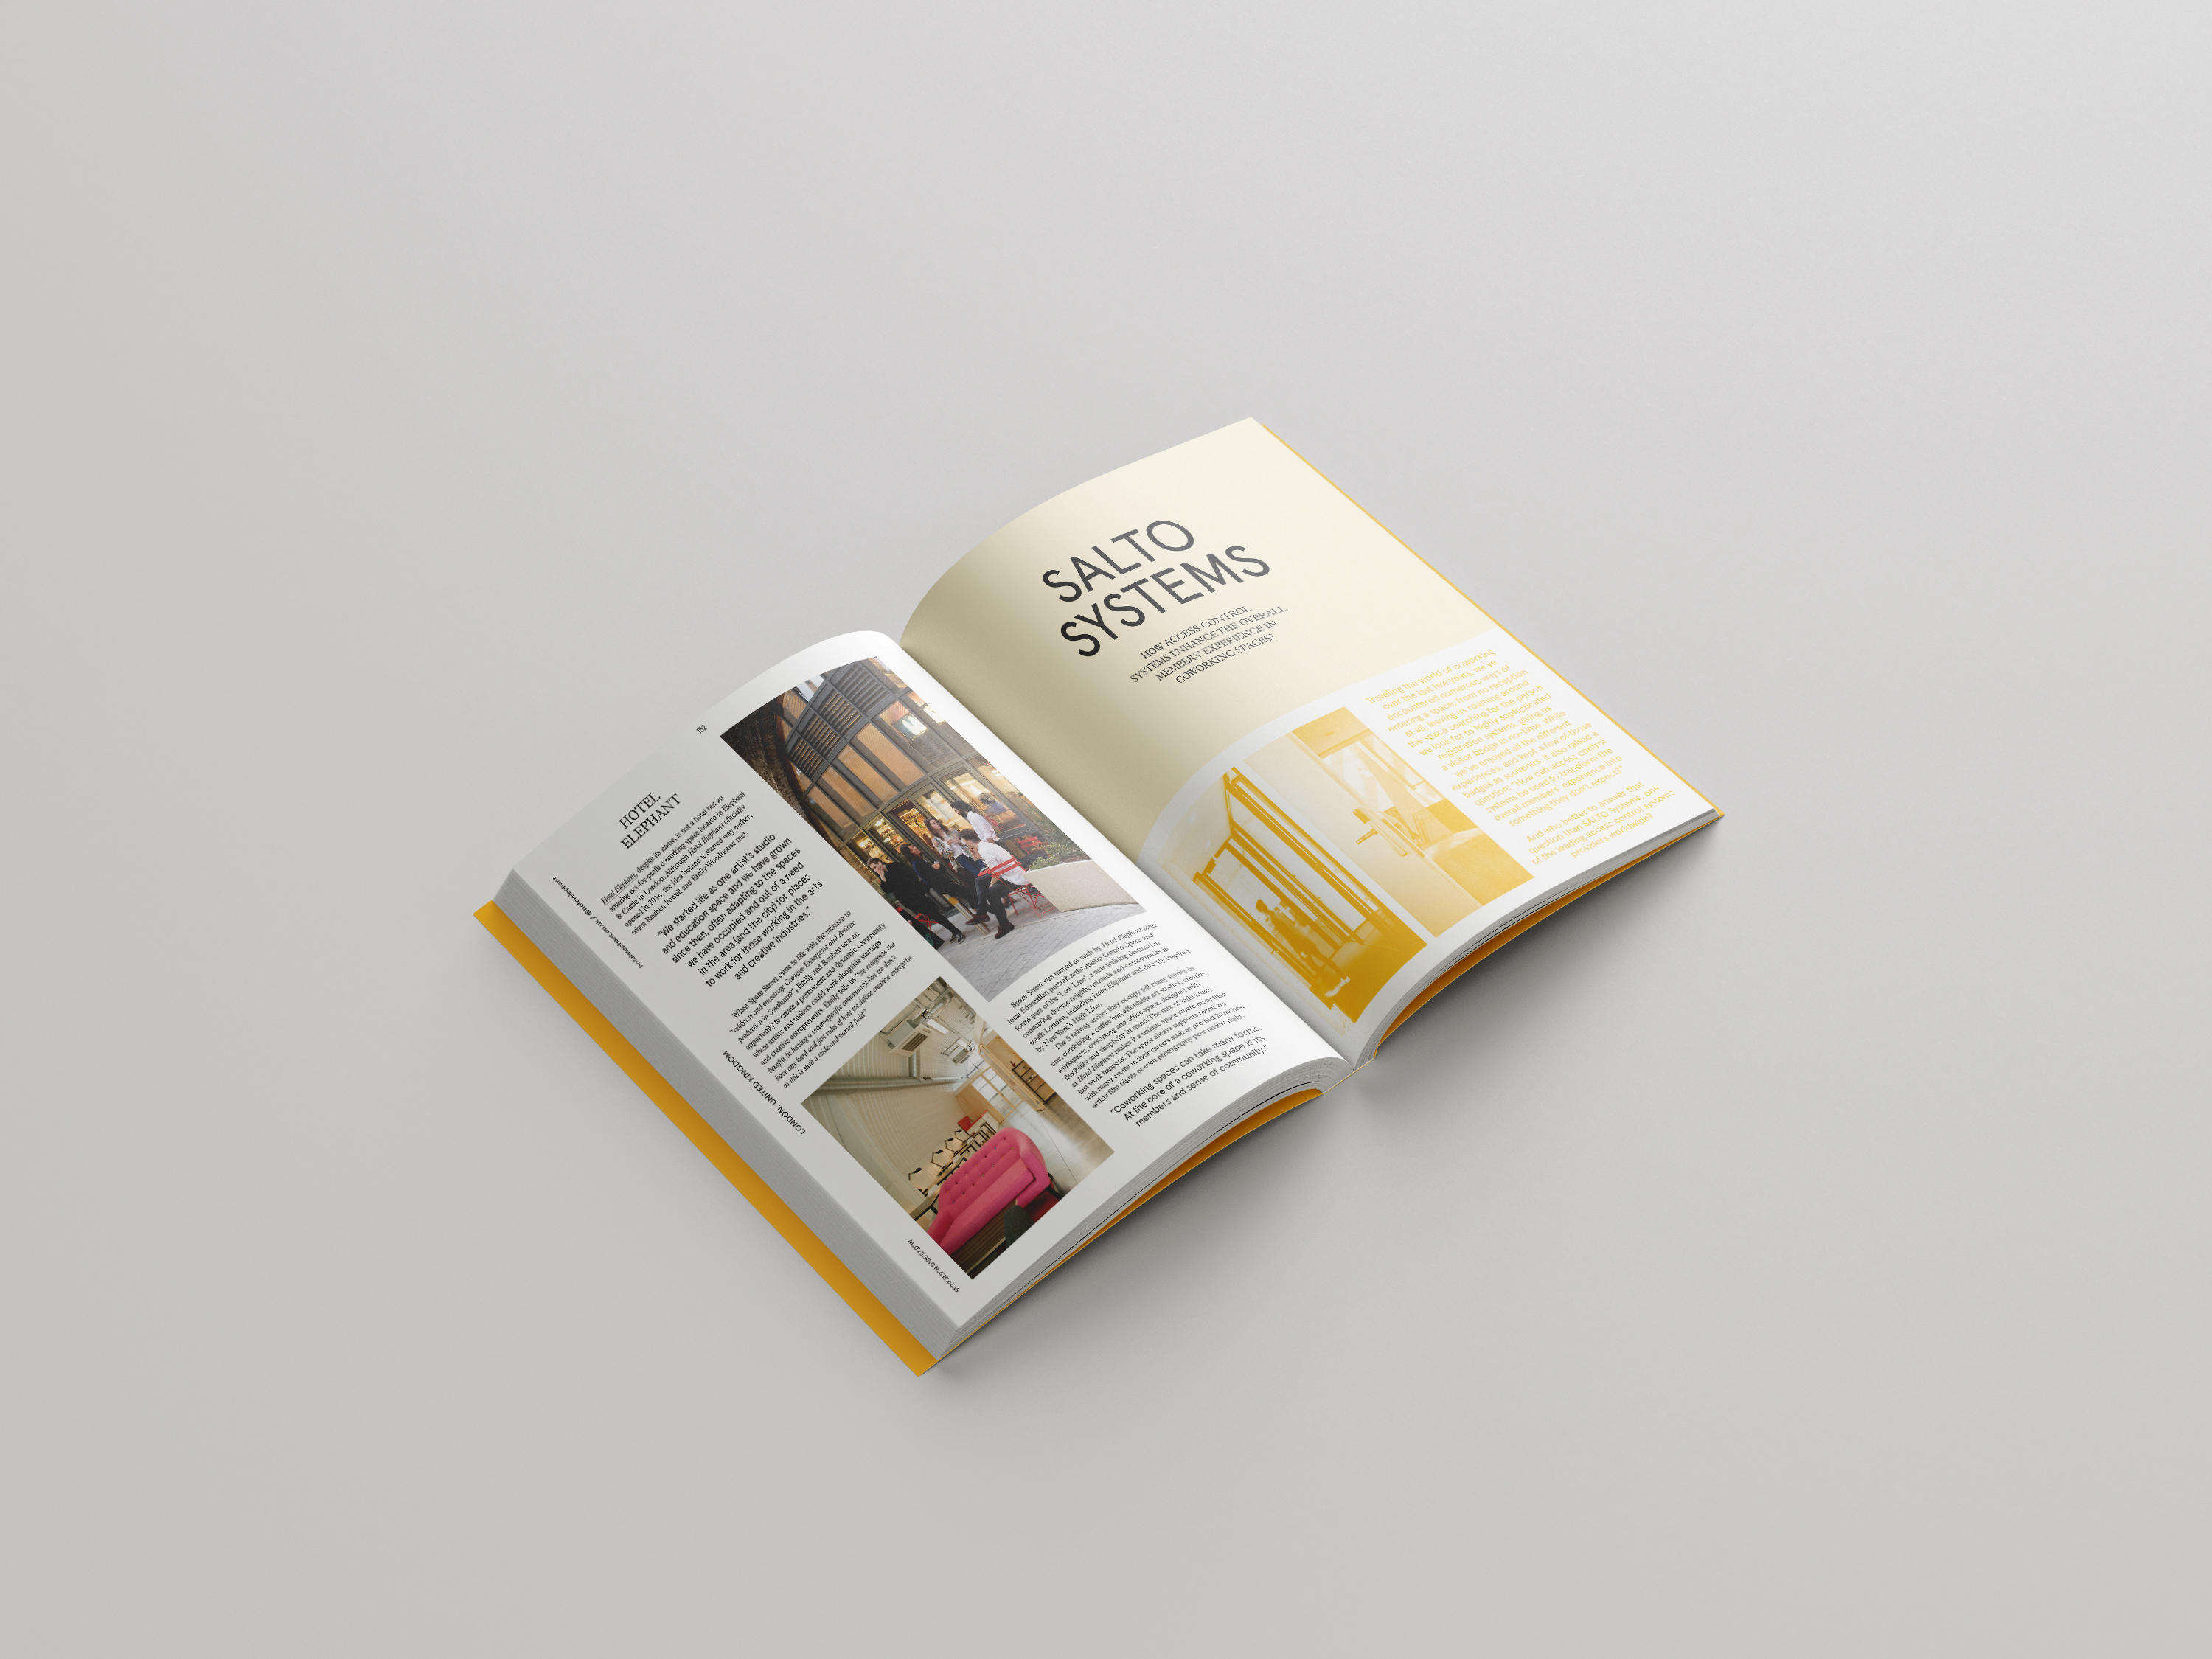 Coworking book page spread, open to page providing information on Salto Systems